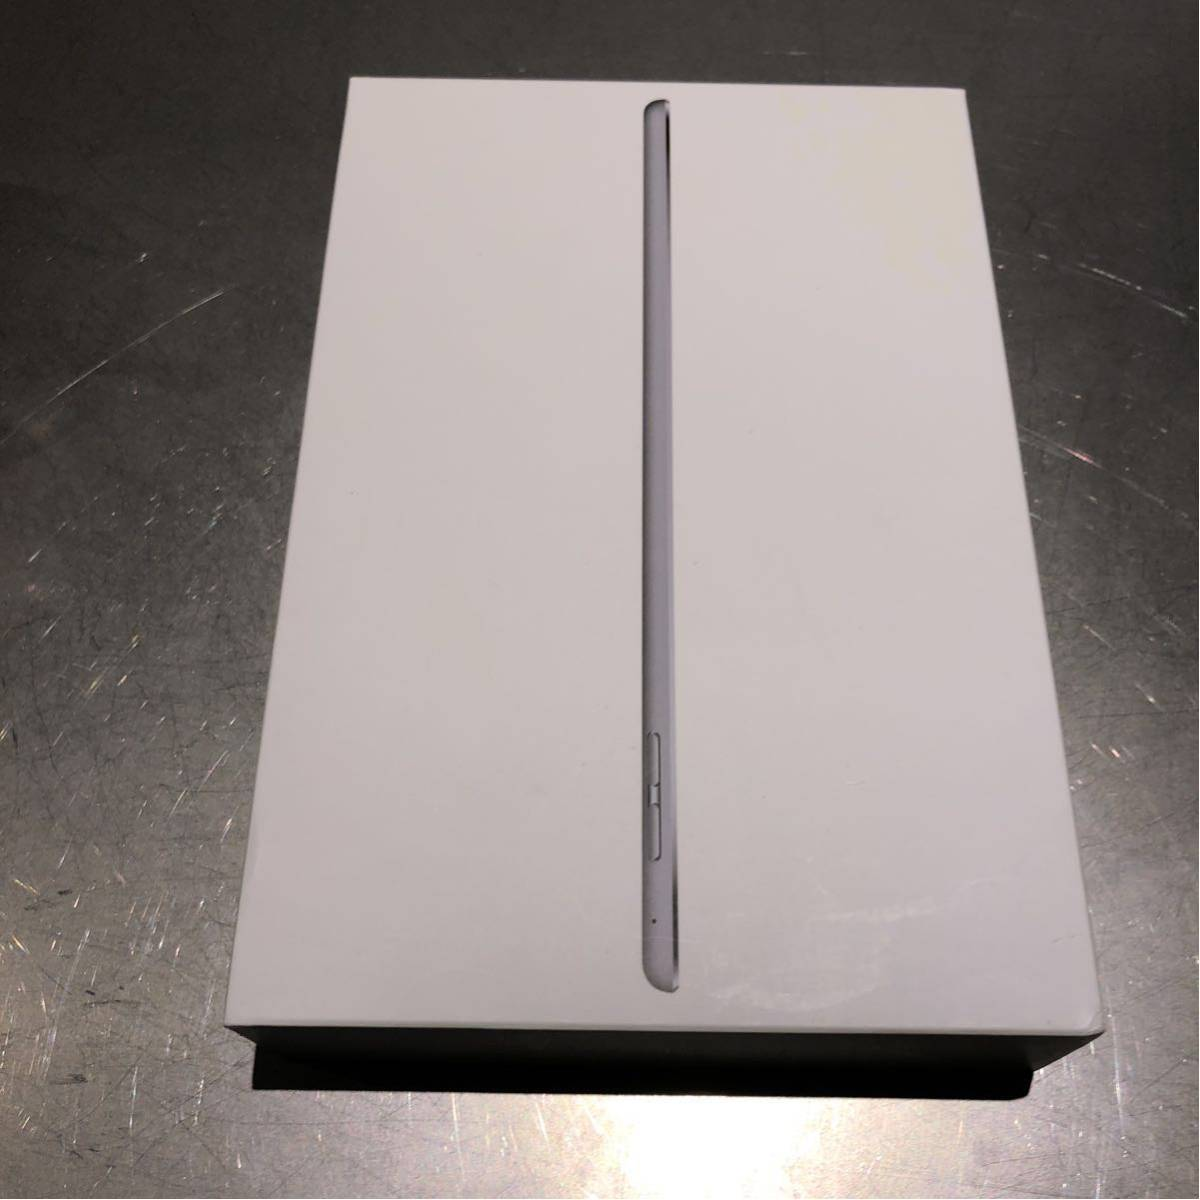 iPad mini 4 Wifi Cellular 128GB Space Gray